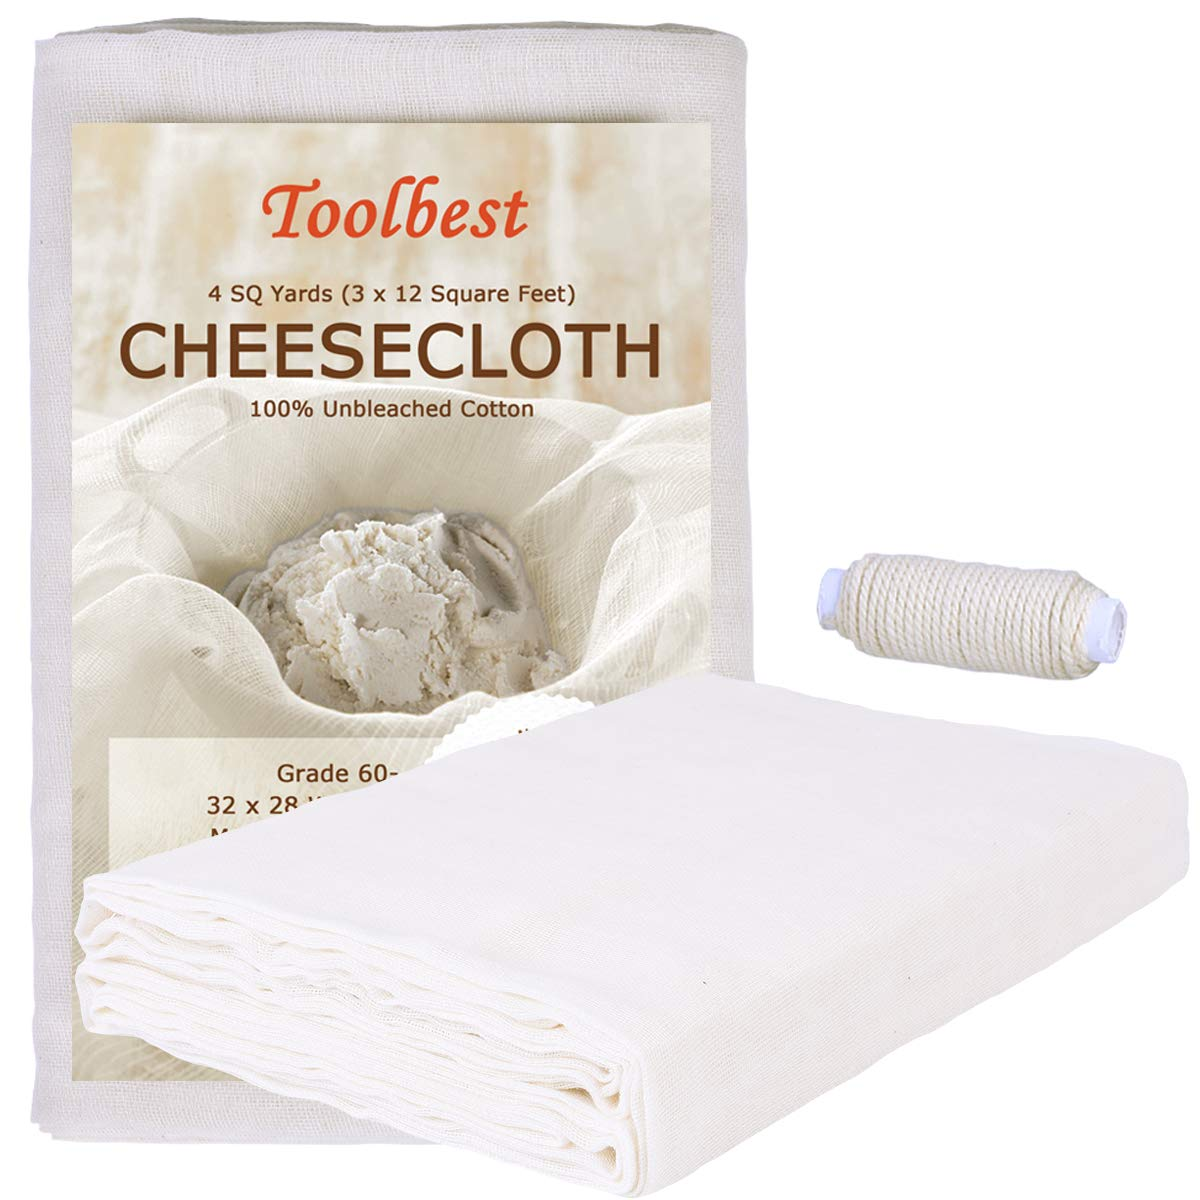 Cheesecloth, Grade 60, 36 Sq Feet, 100% Unbleached Cheesecloth Fabric for Cooking with Cooking Twine, Washable & Reusable Cotton Strainer, Filter(4 Sq Yards Cloth with 4 Yards Twine) SCENGCLOS